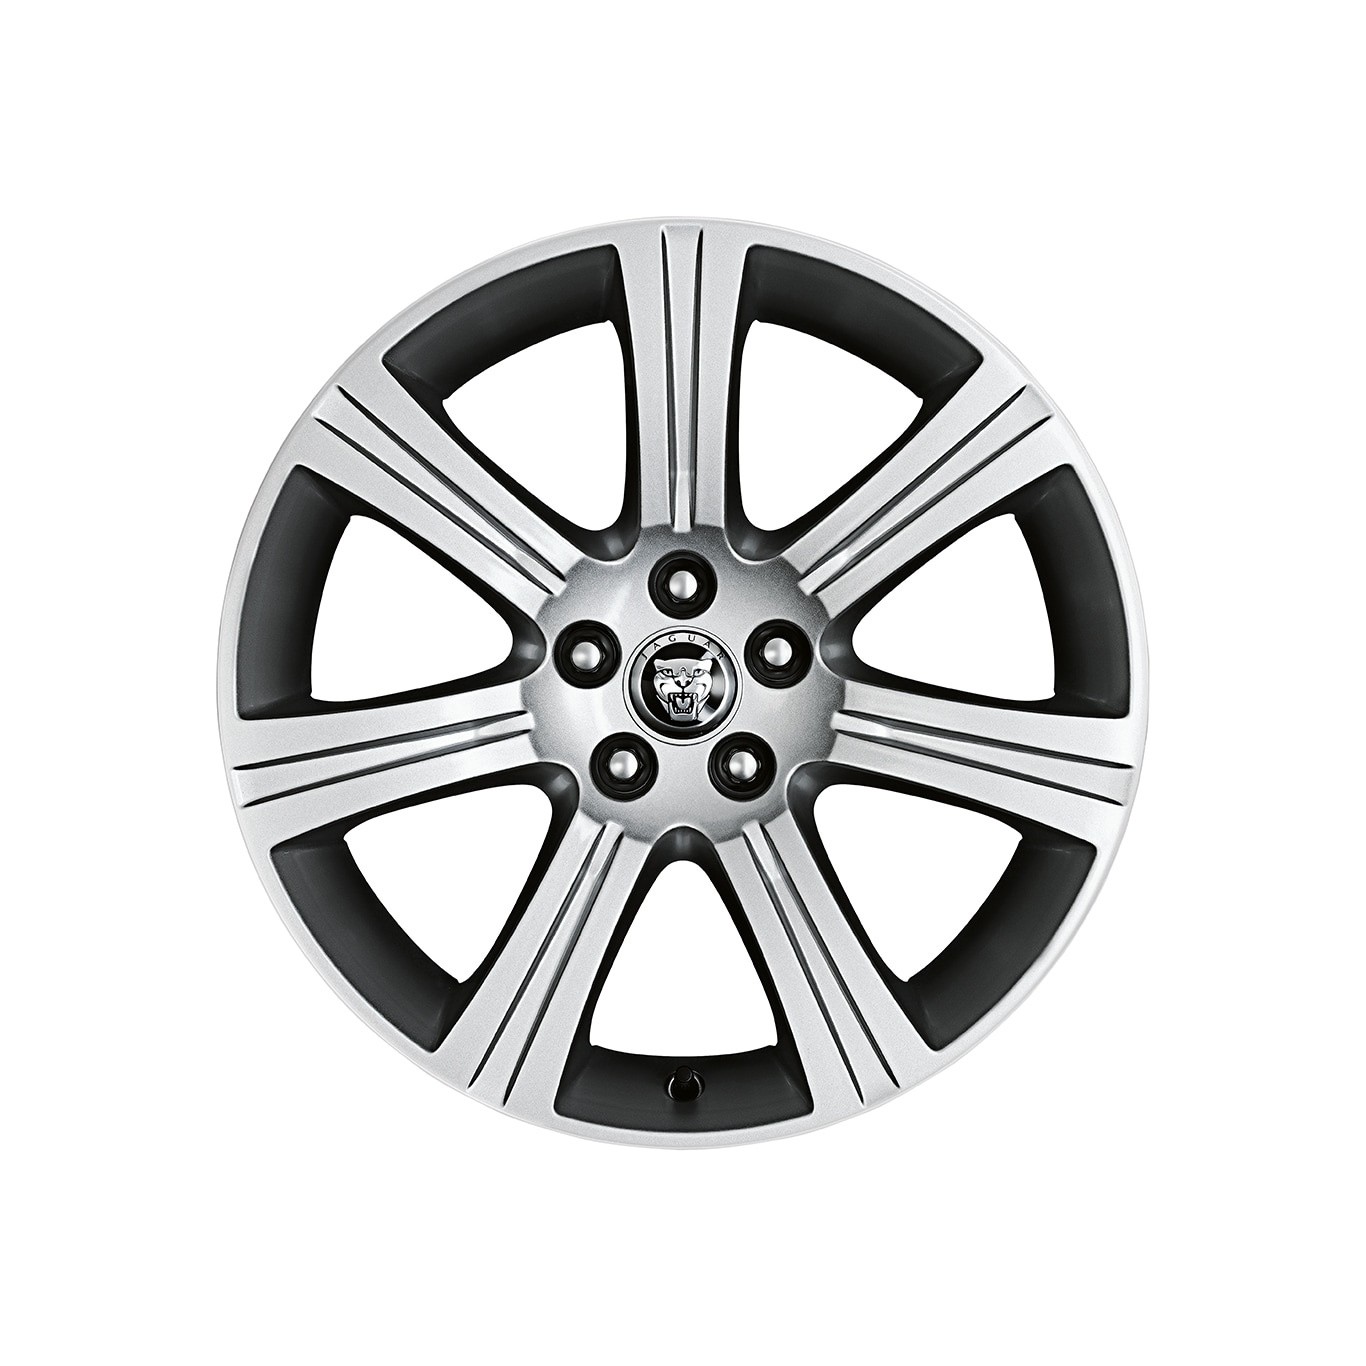 "Alloy Wheel - 18"" Style 7017, 7 spoke, Rear"